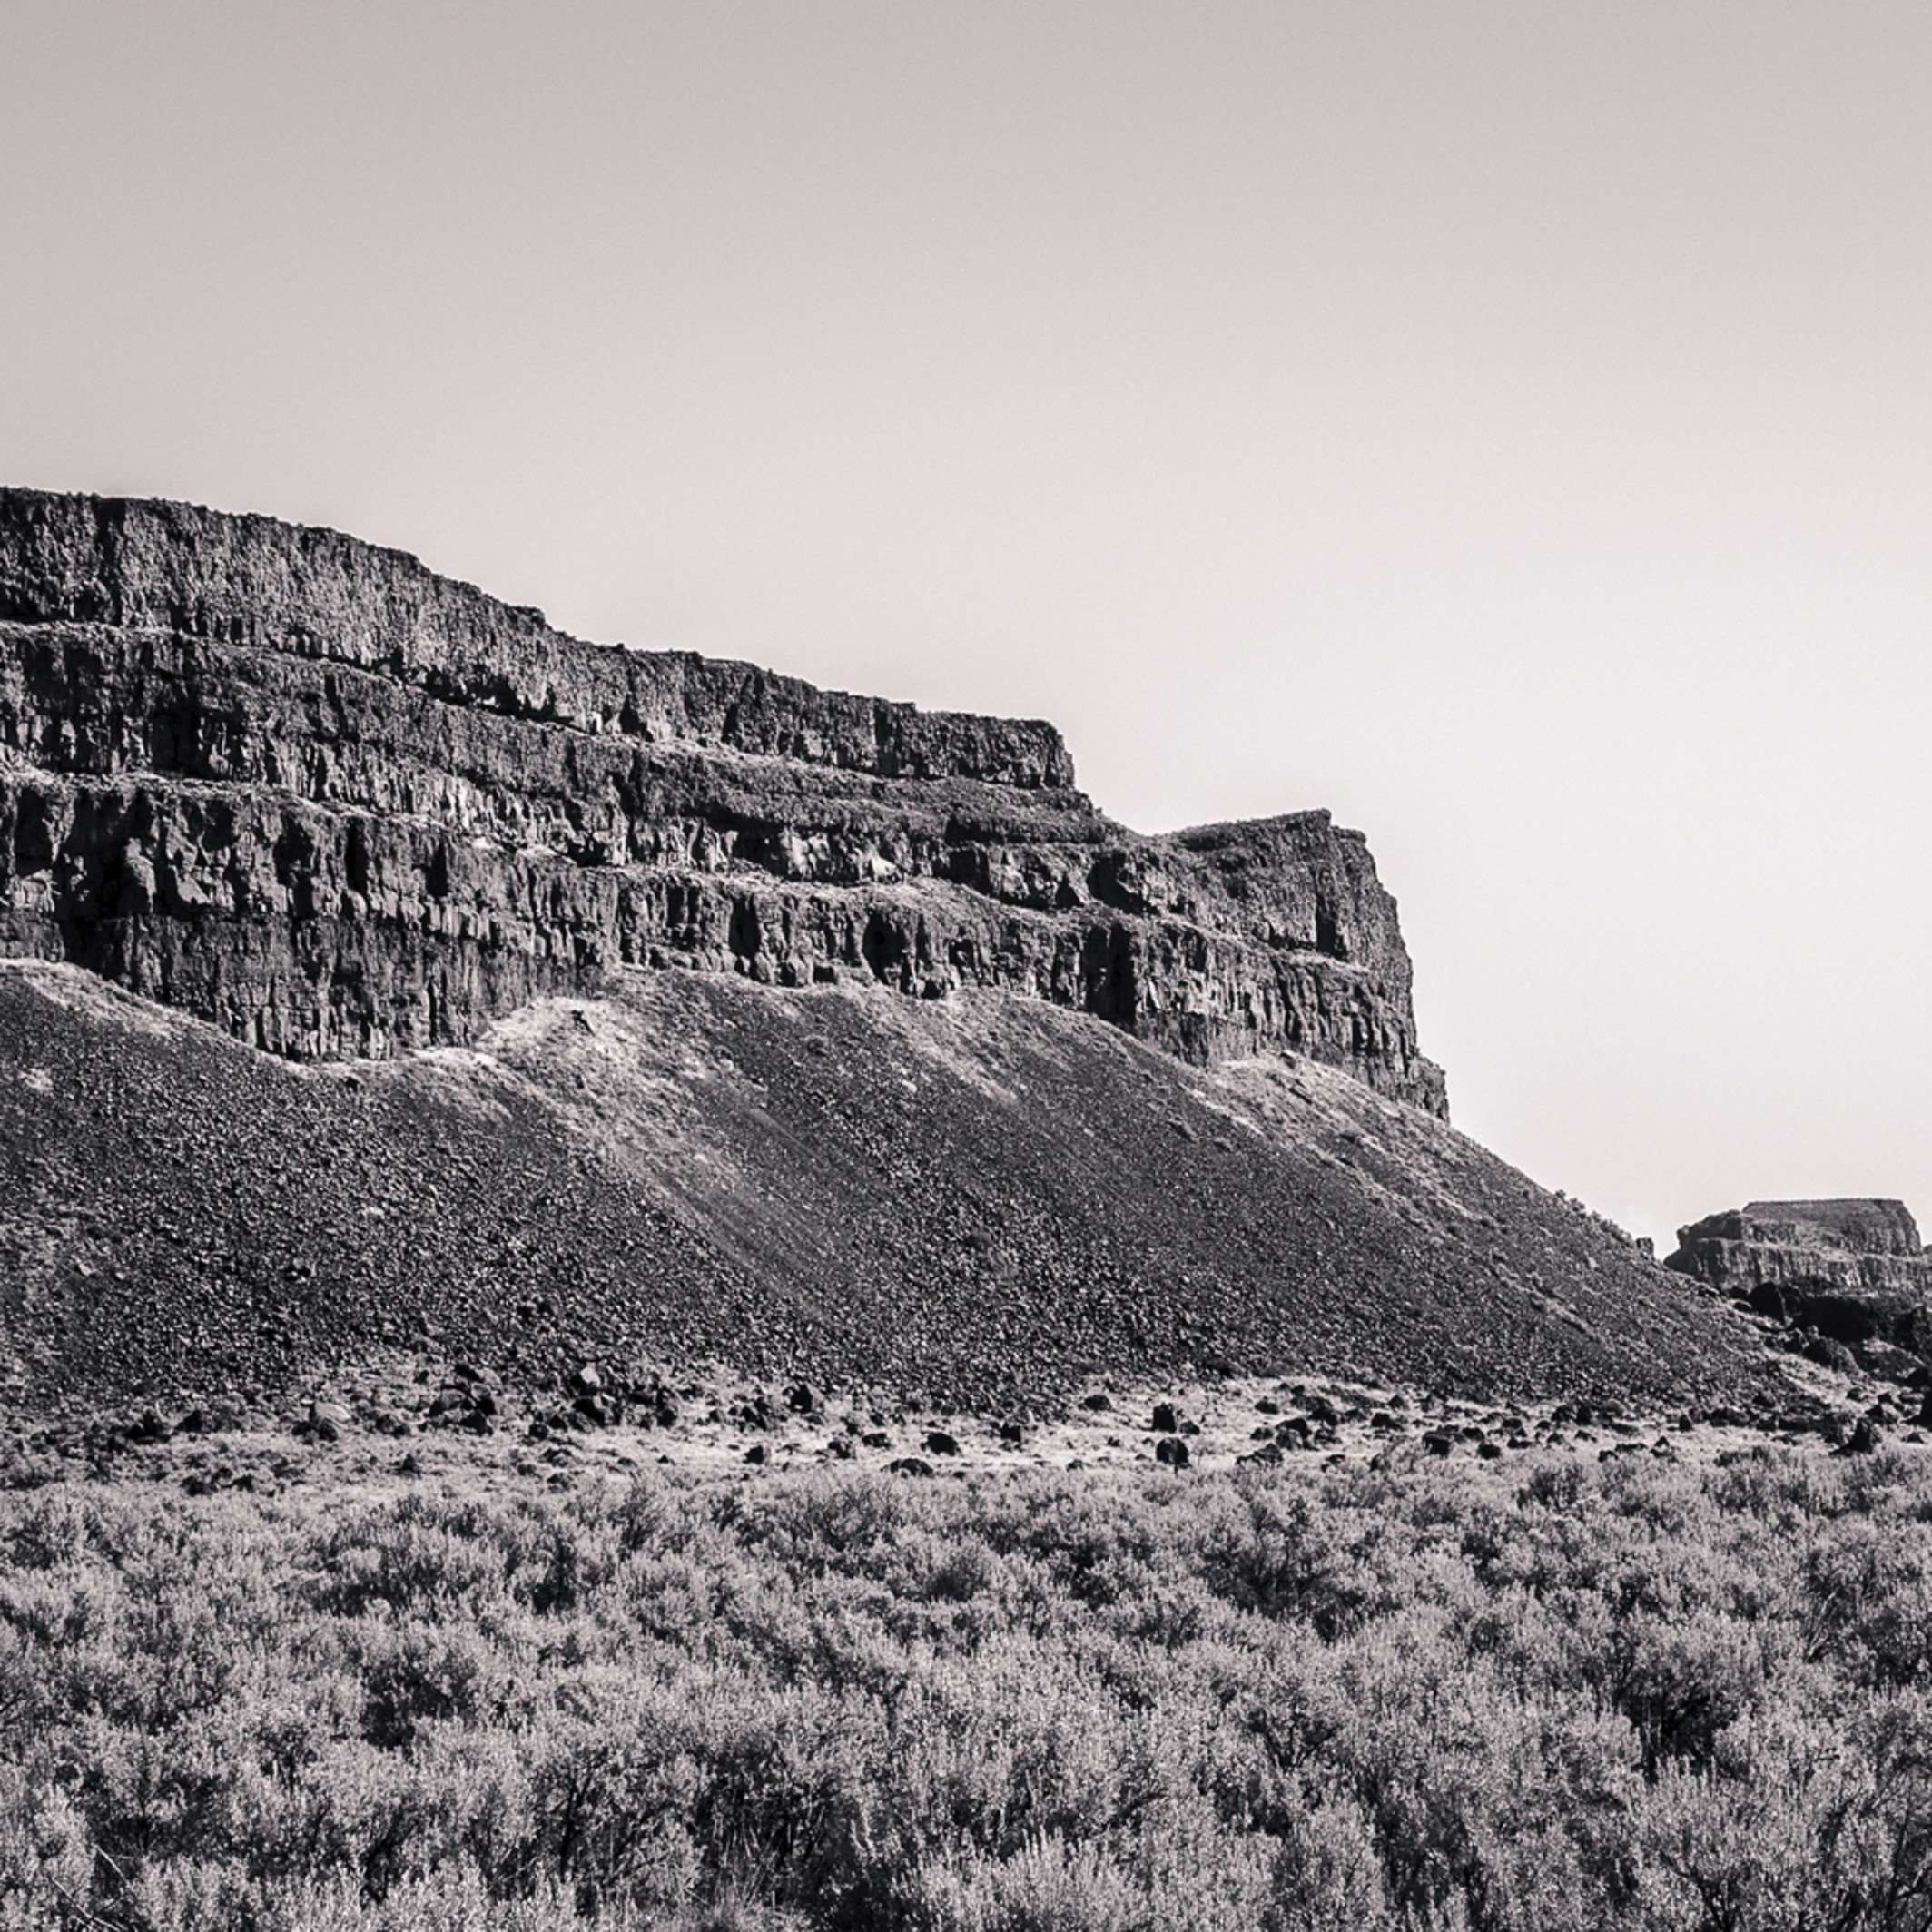 Umatilla rock washington june 2014 wpcbwb